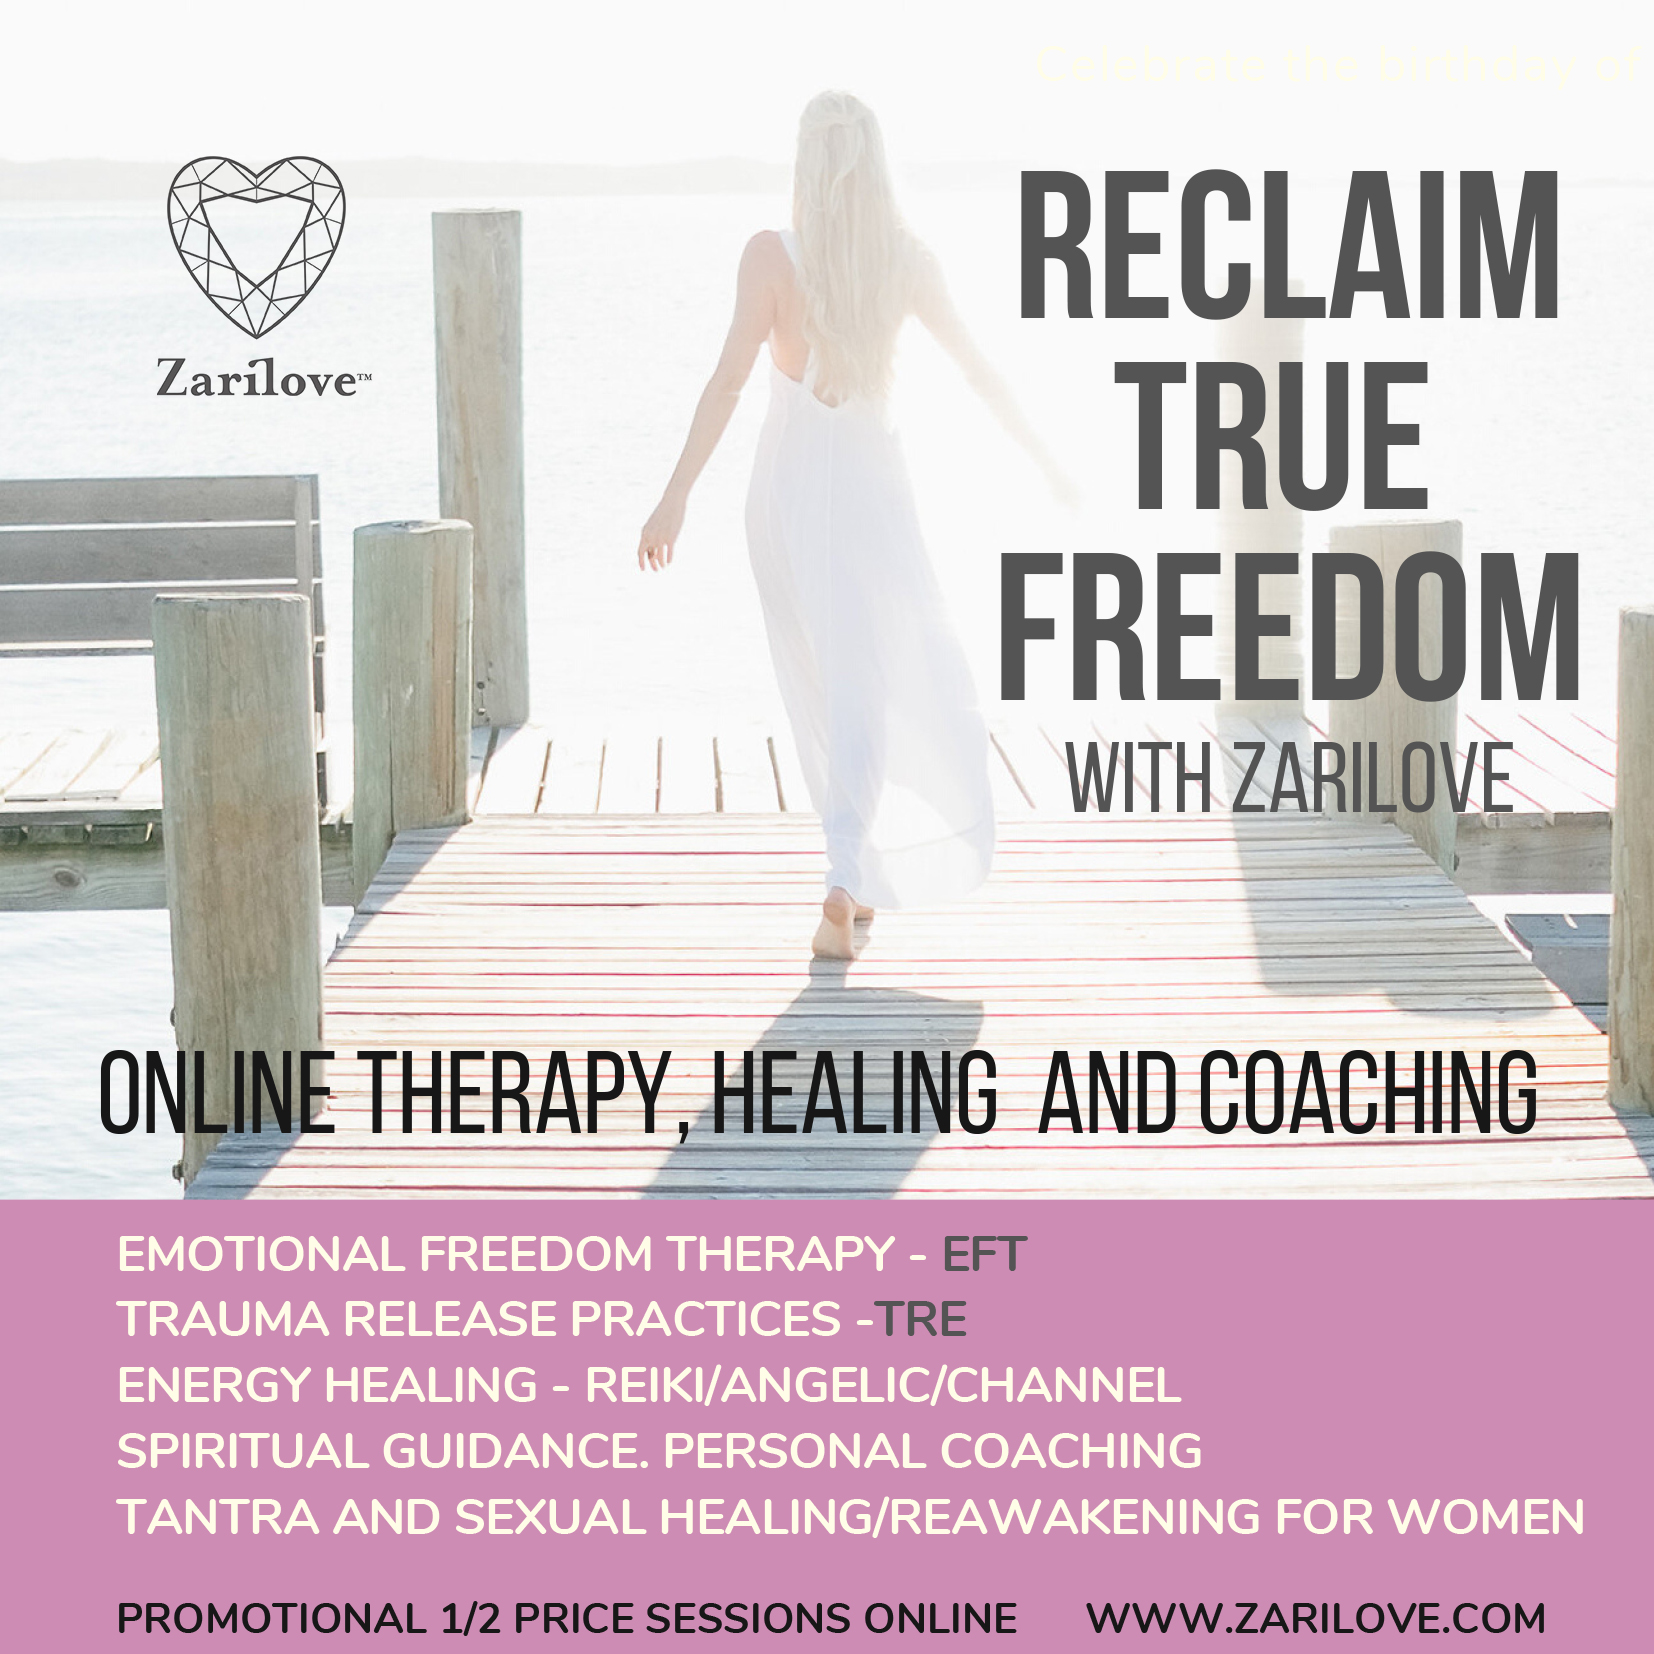 50% off Online Personal Coaching/Guidance Sessions ~ From Suffering to Success